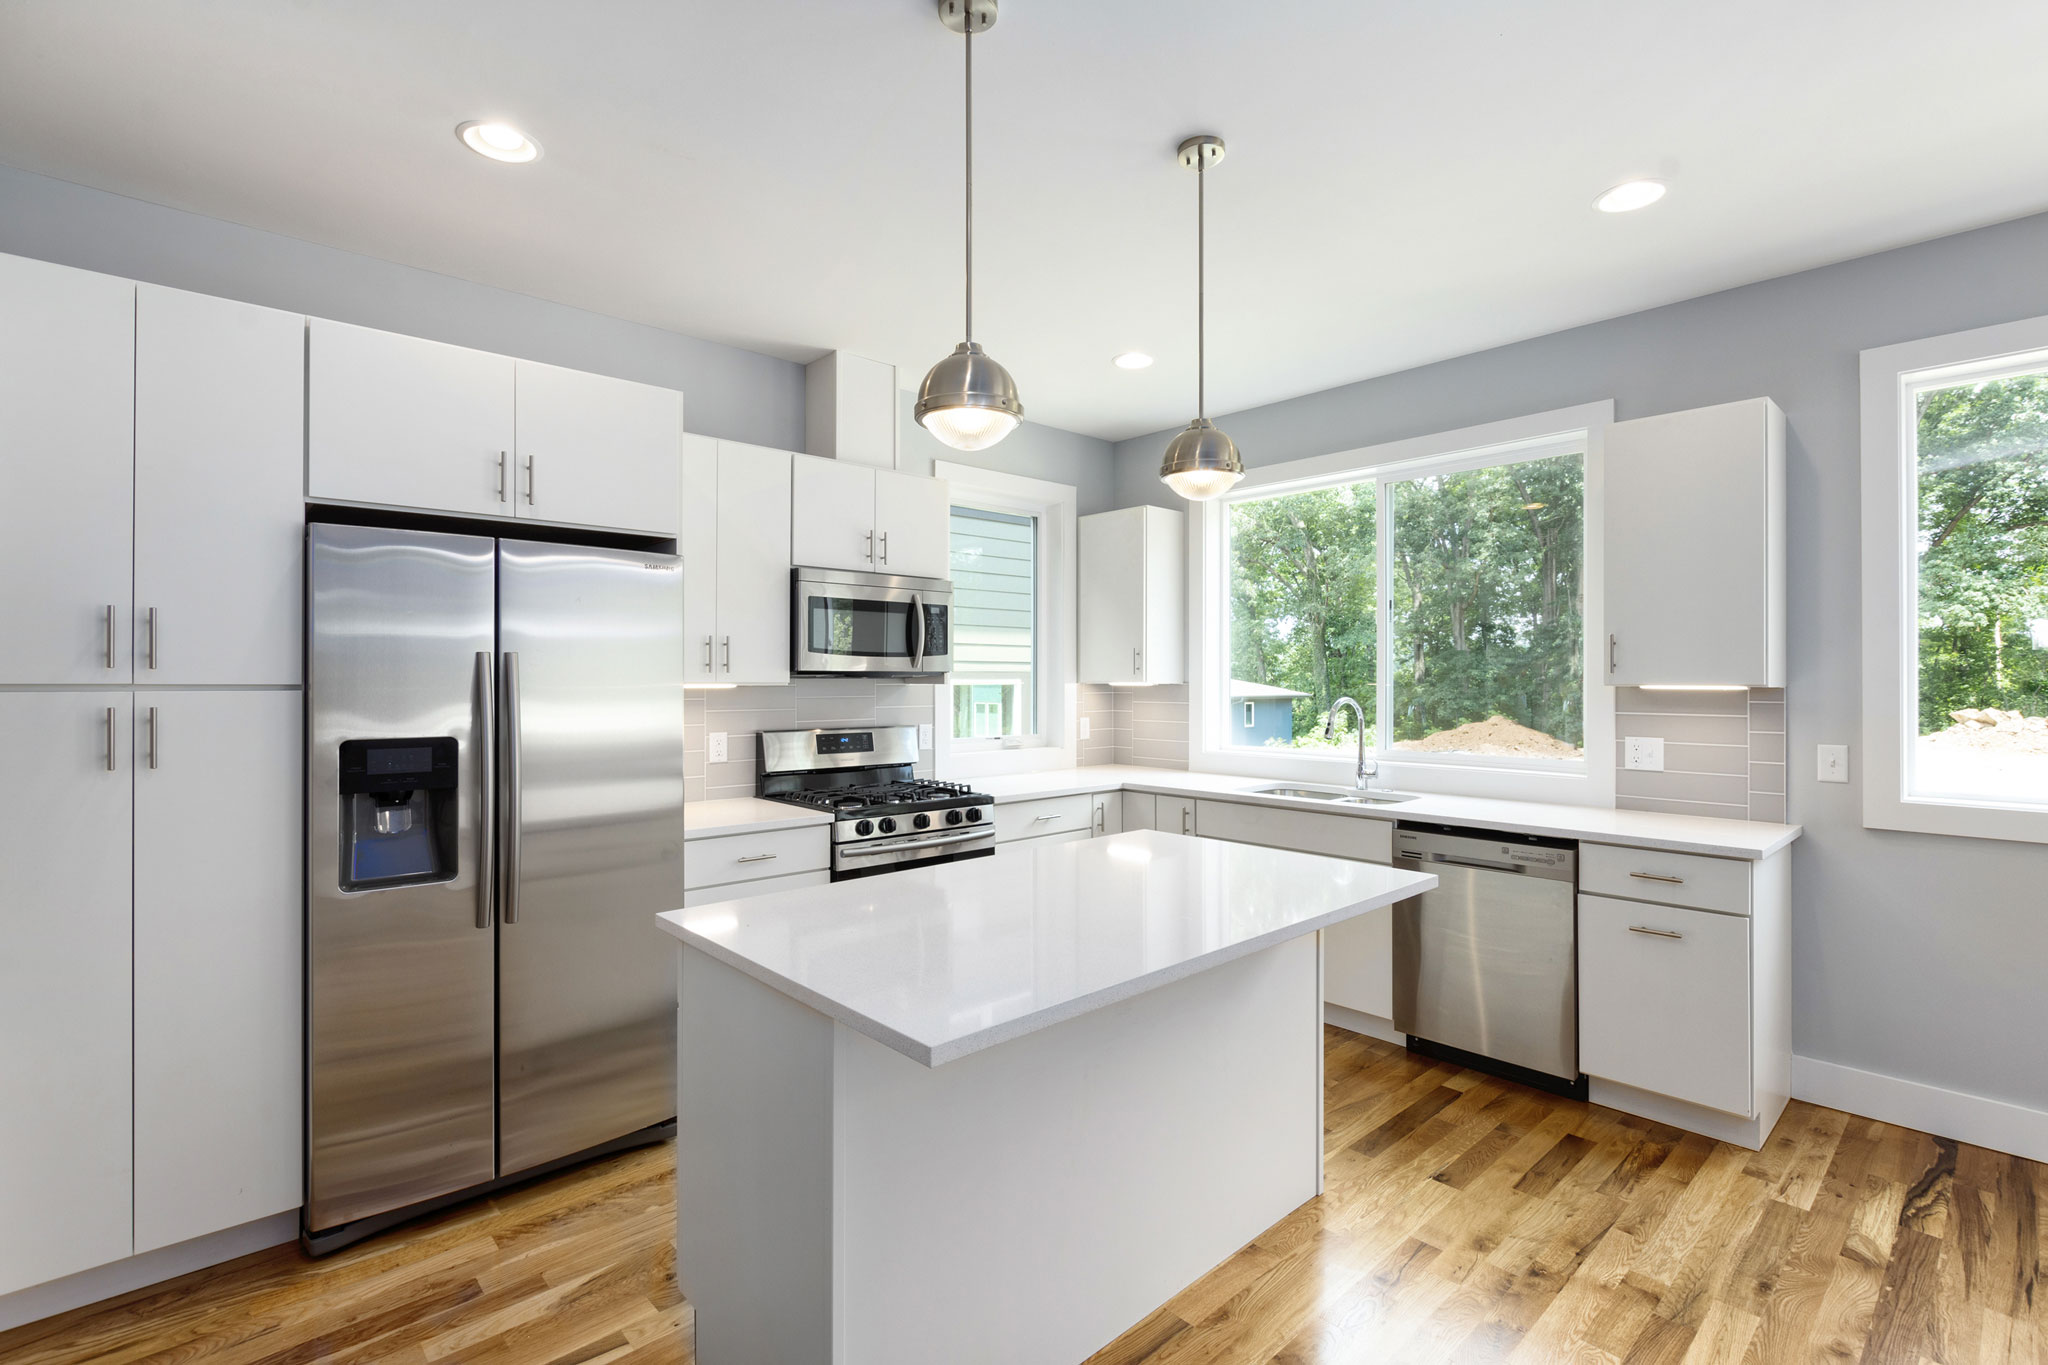 Gourmet Kitchen with Quartz Countertops and Stainless Appliances.jpg